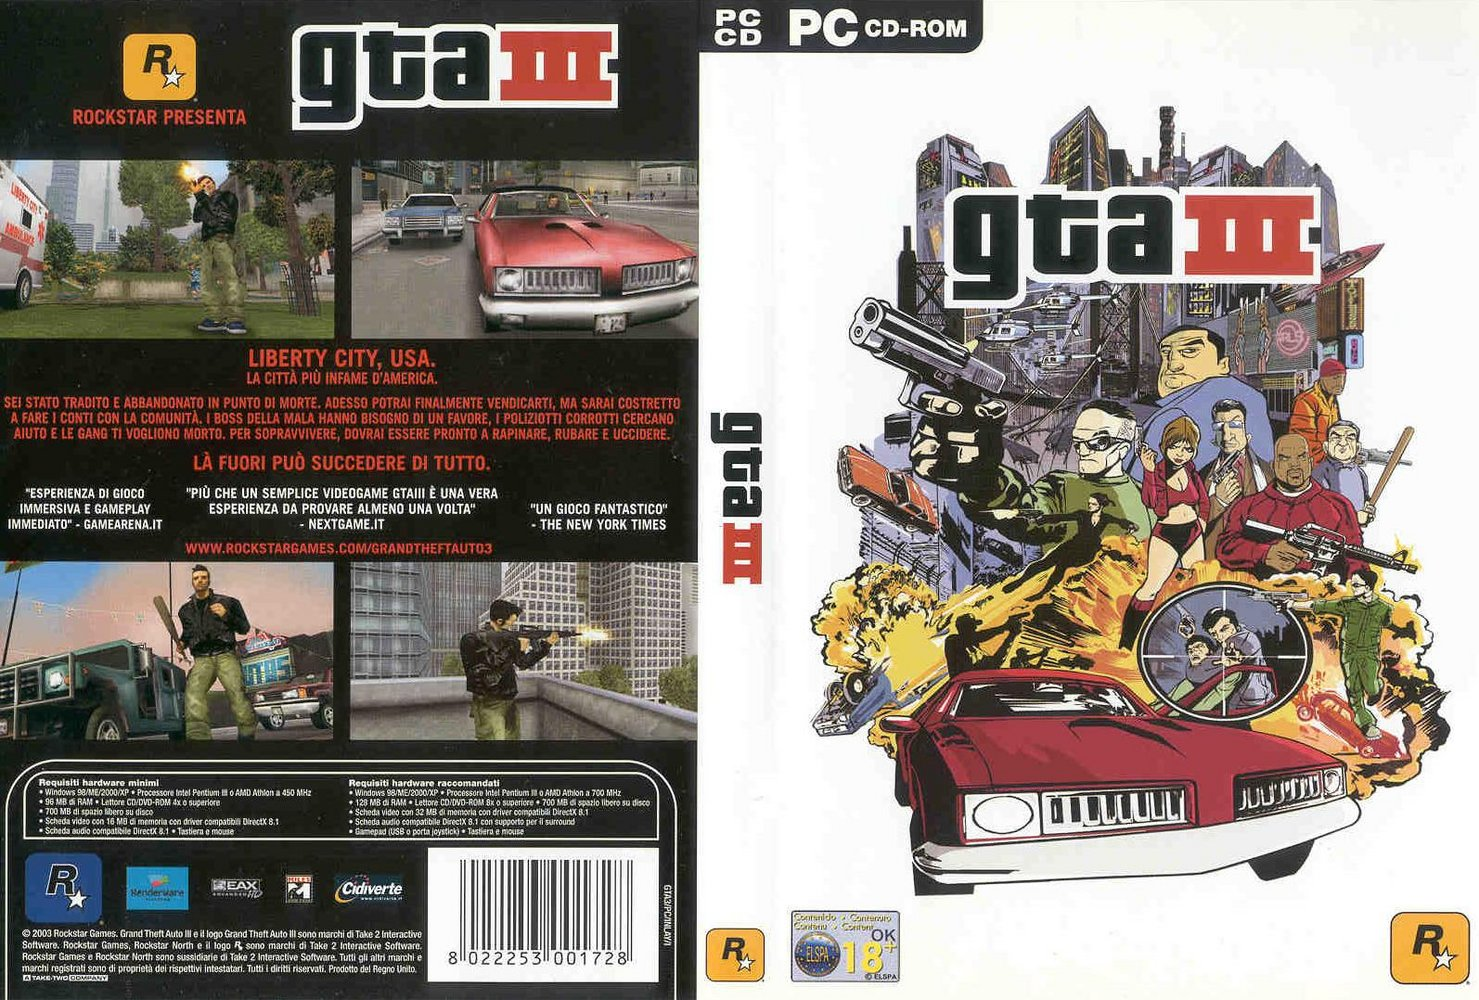 Gta 3 Claves De Gta Ps2 Pc